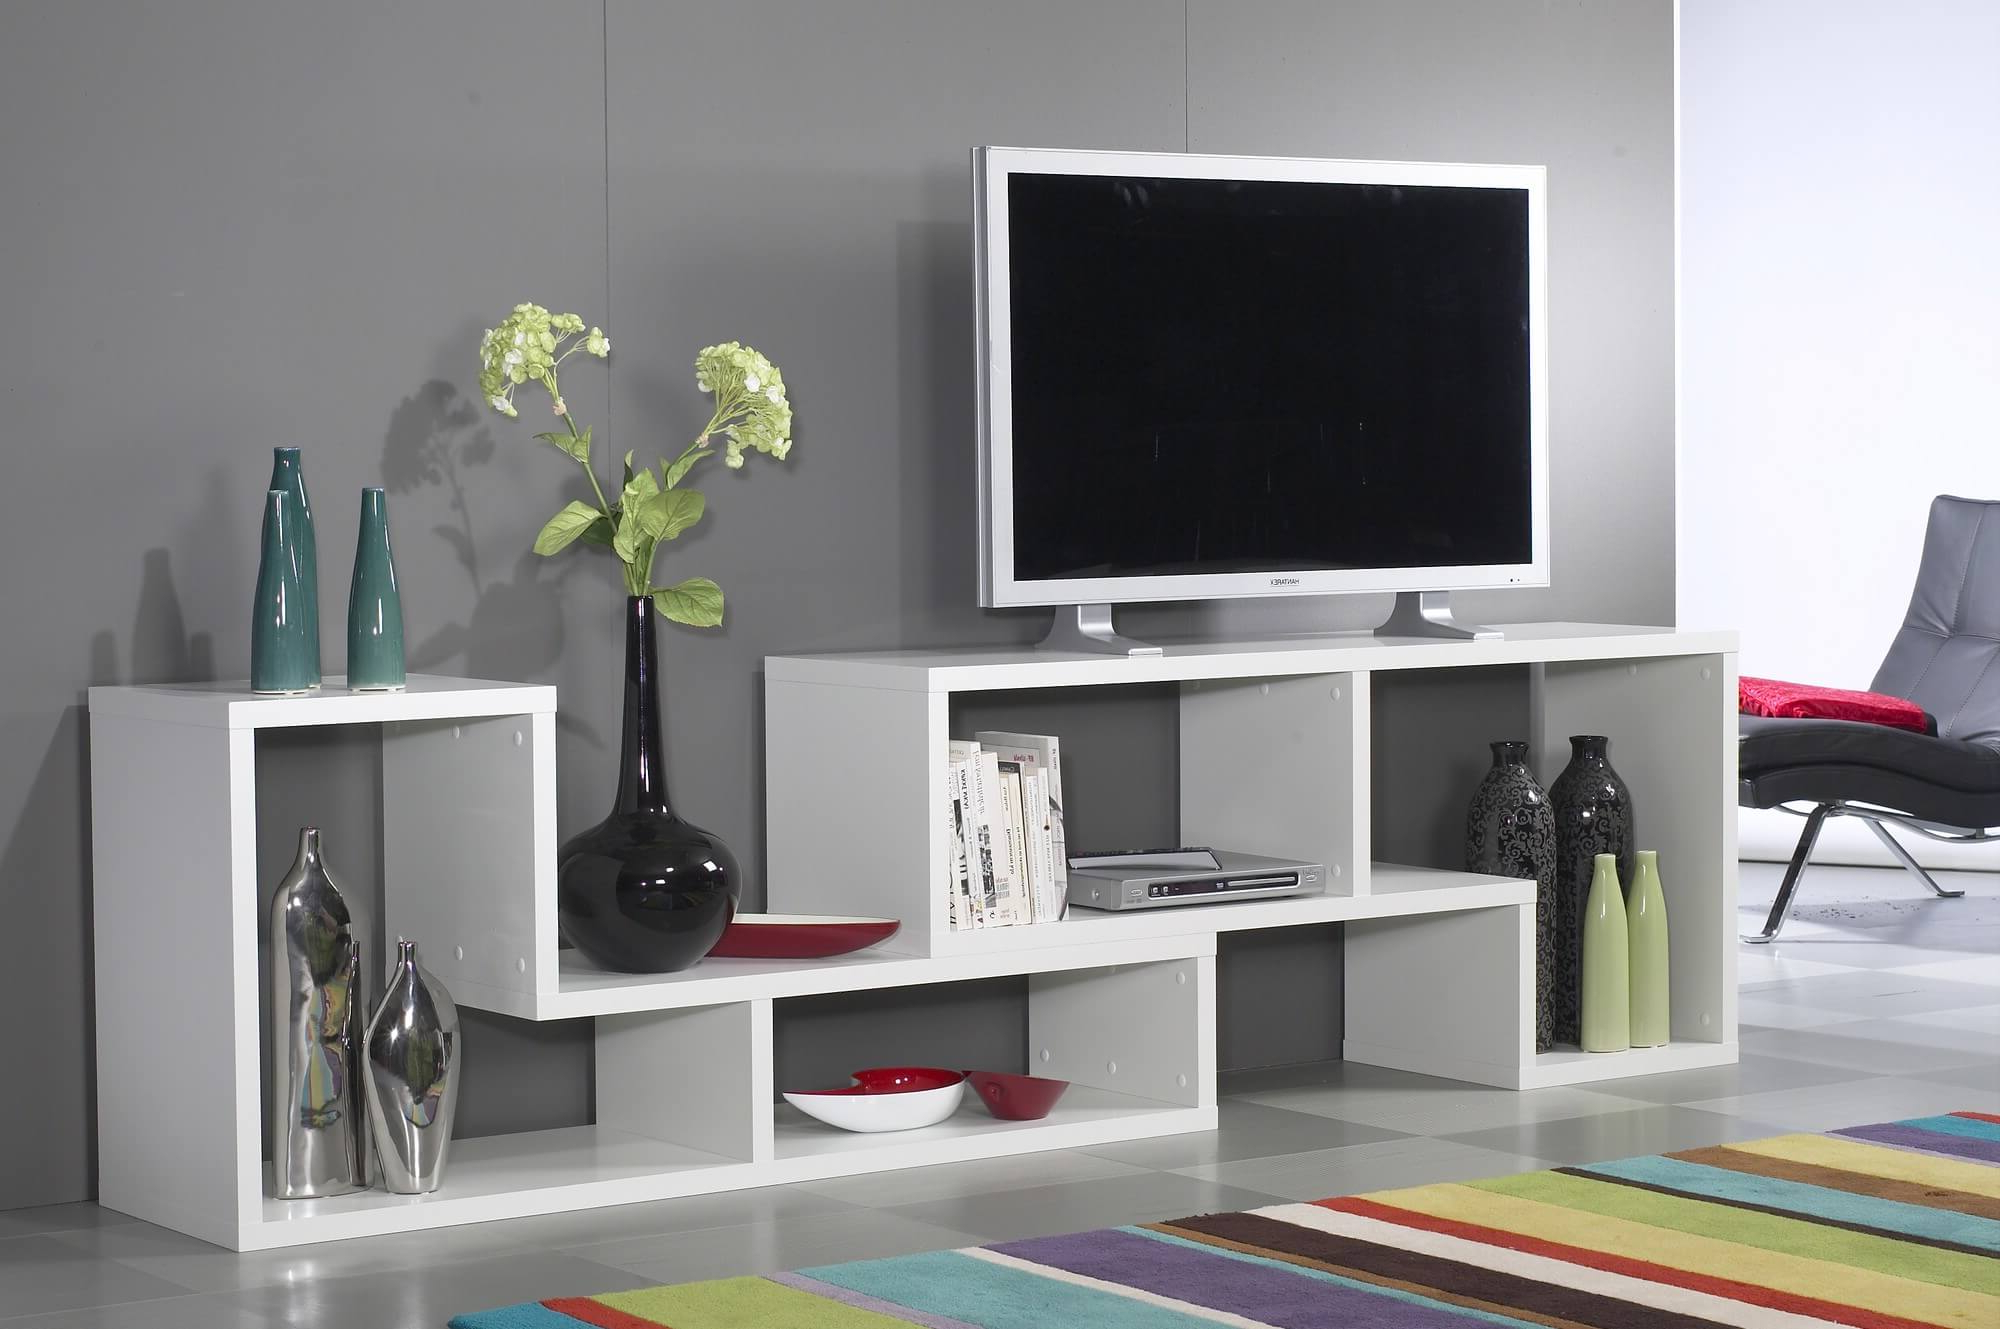 15 6 Cube Bookcases, Shelves And Storage Options Intended For Horizontal Or Vertical Storage Shelf Tv Stands (View 11 of 20)